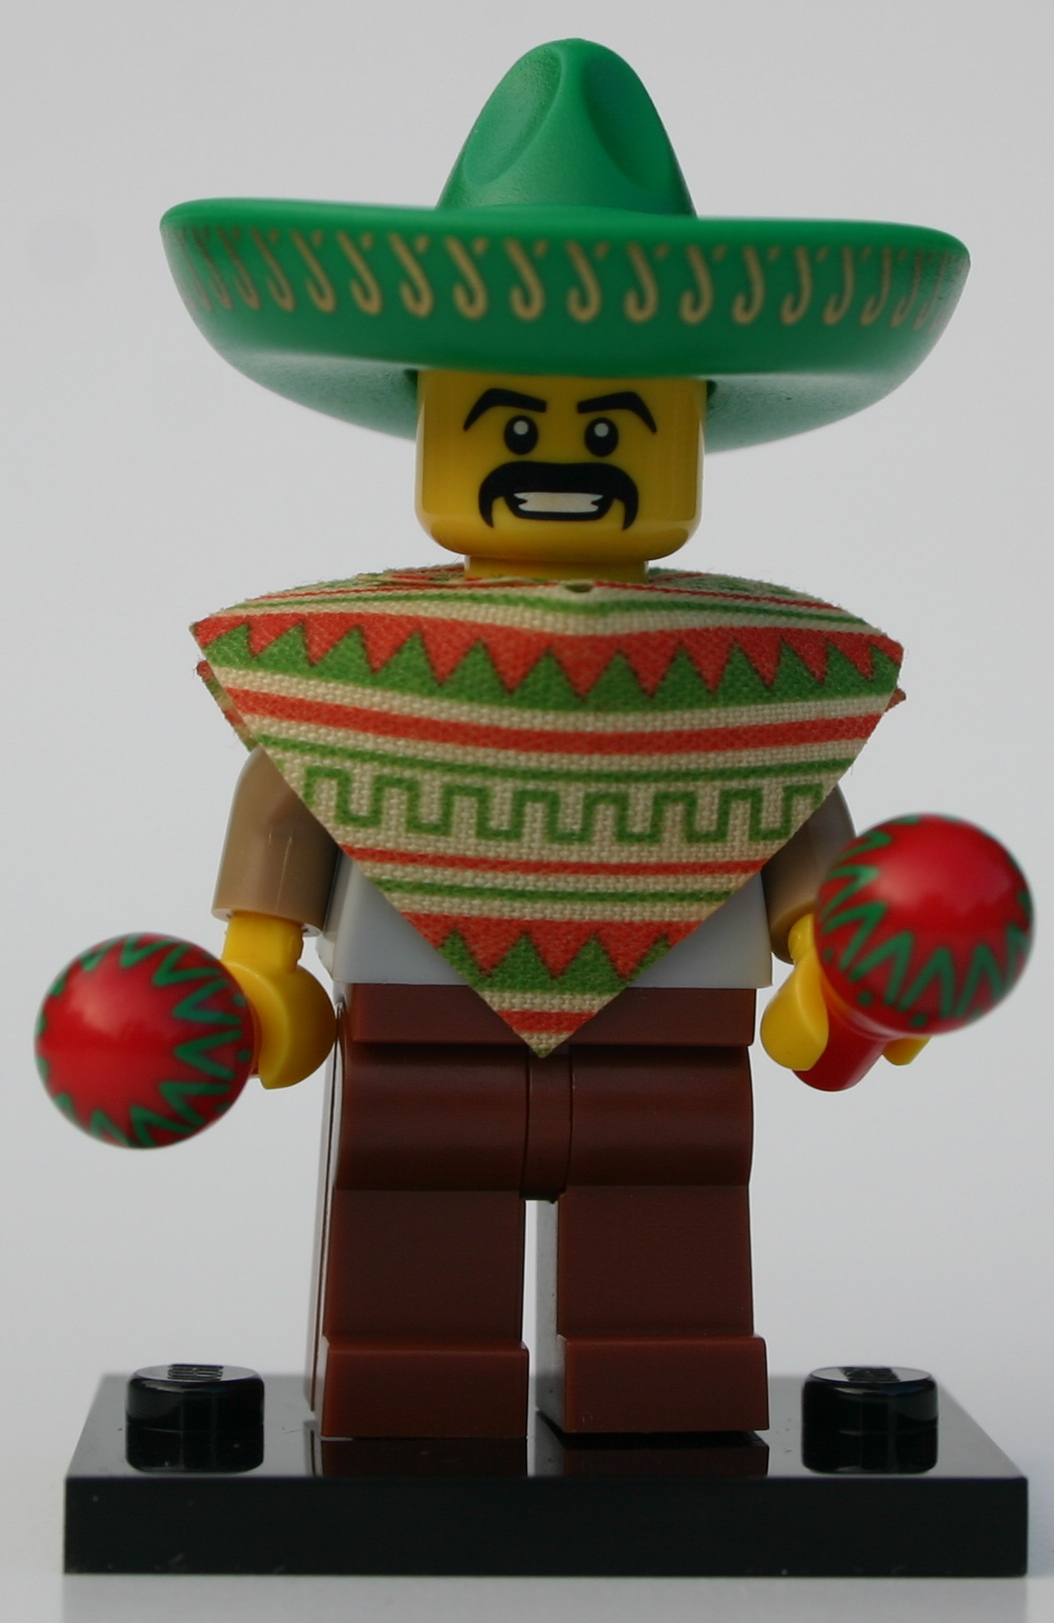 1 x GREEN MEXICAN MINIFIGURE SOMBRERO HAT WITH GOLD PATTERN NEW LEGO